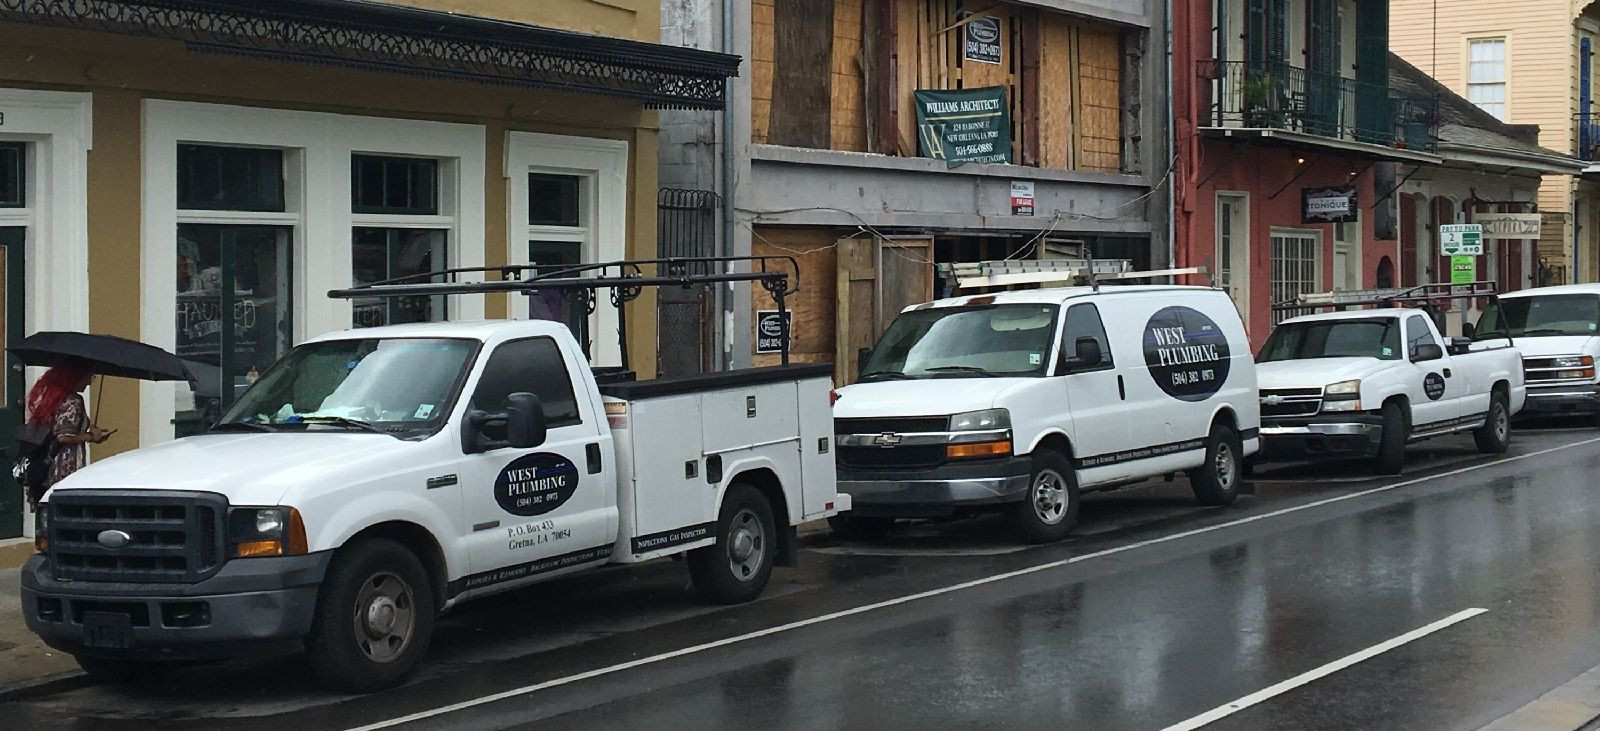 Plumbing job in New Orleans